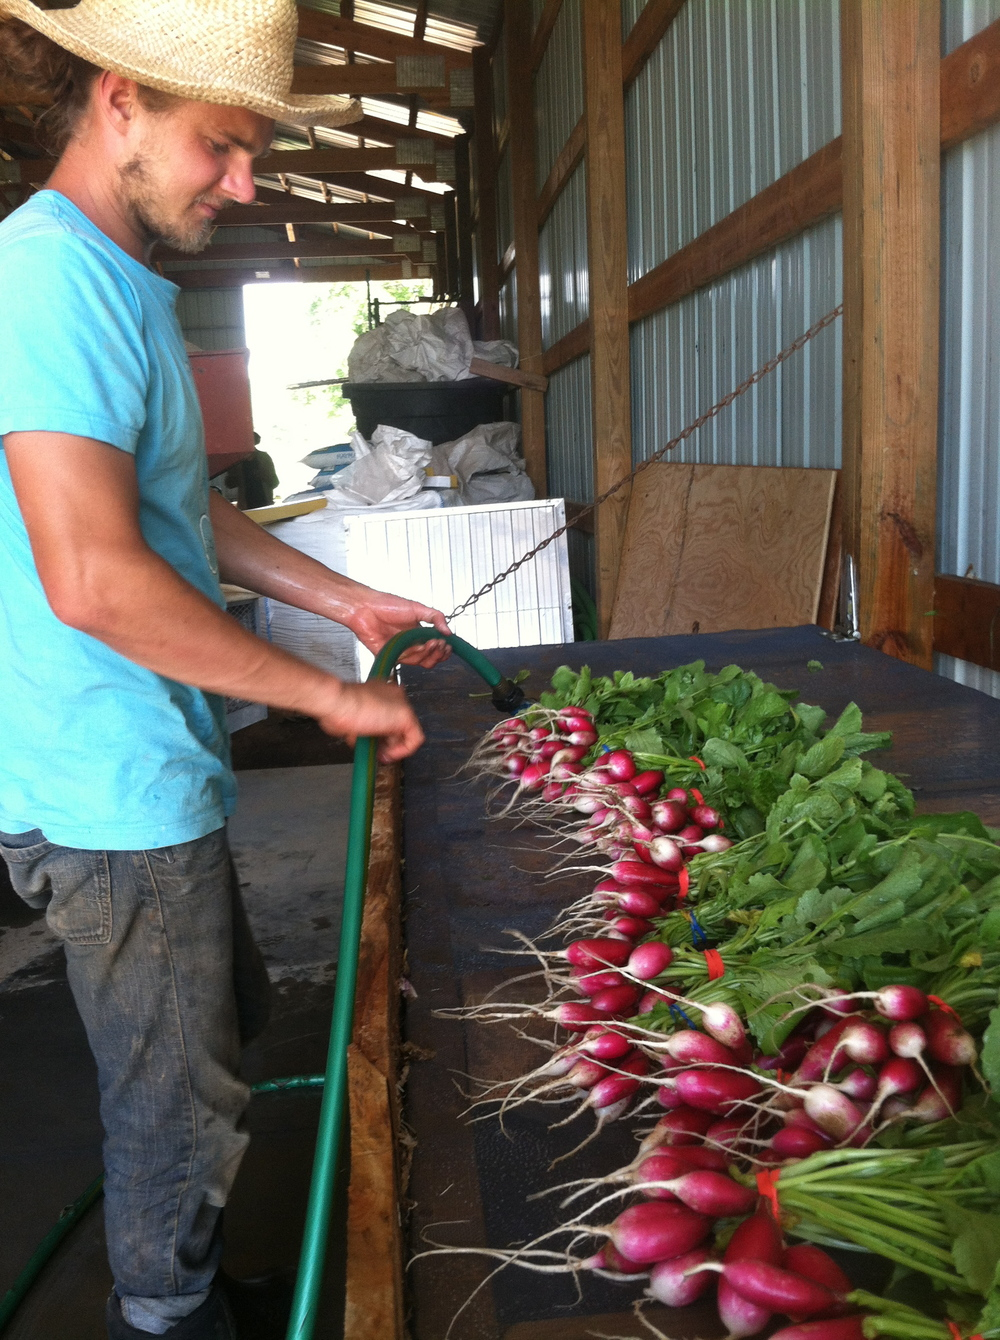 Sam washing radishes